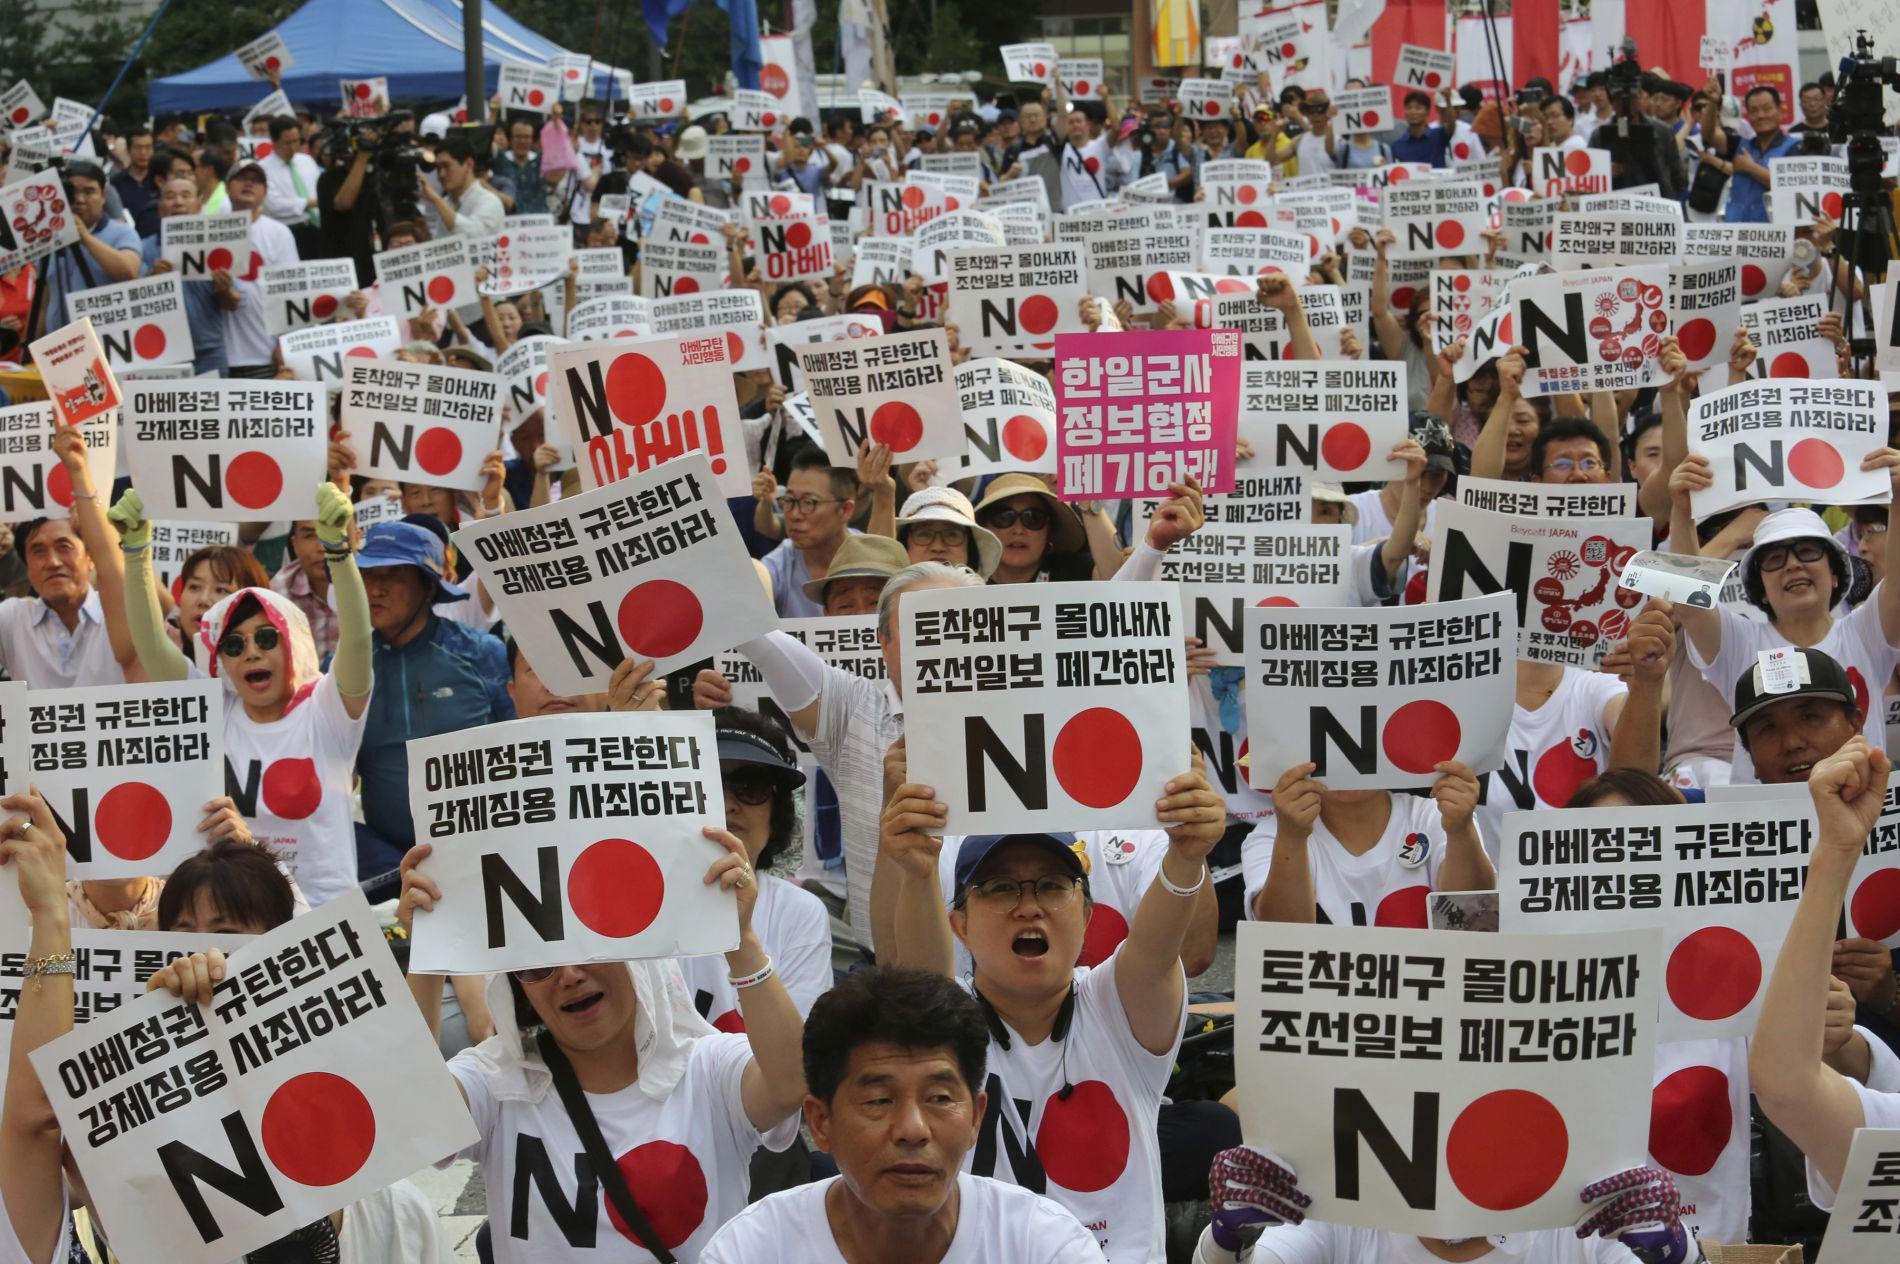 "South Korean protesters stage a rally to denounce Japan's new trade restrictions on South Korea in front of the Japanese embassy in Seoul, South Korea, Saturday, Aug. 3, 2019. Japan's Cabinet on Friday approved the removal of South Korea from a list of countries with preferential trade status, prompting retaliation from Seoul where a senior official summoned the Japanese ambassador and told him that South Koreans may no longer consider Japan a friendly nation. The placards read: ""We denounce Japanese Prime Minister Shinzo Abe."" (AP Photo/Ahn Young-joon)"